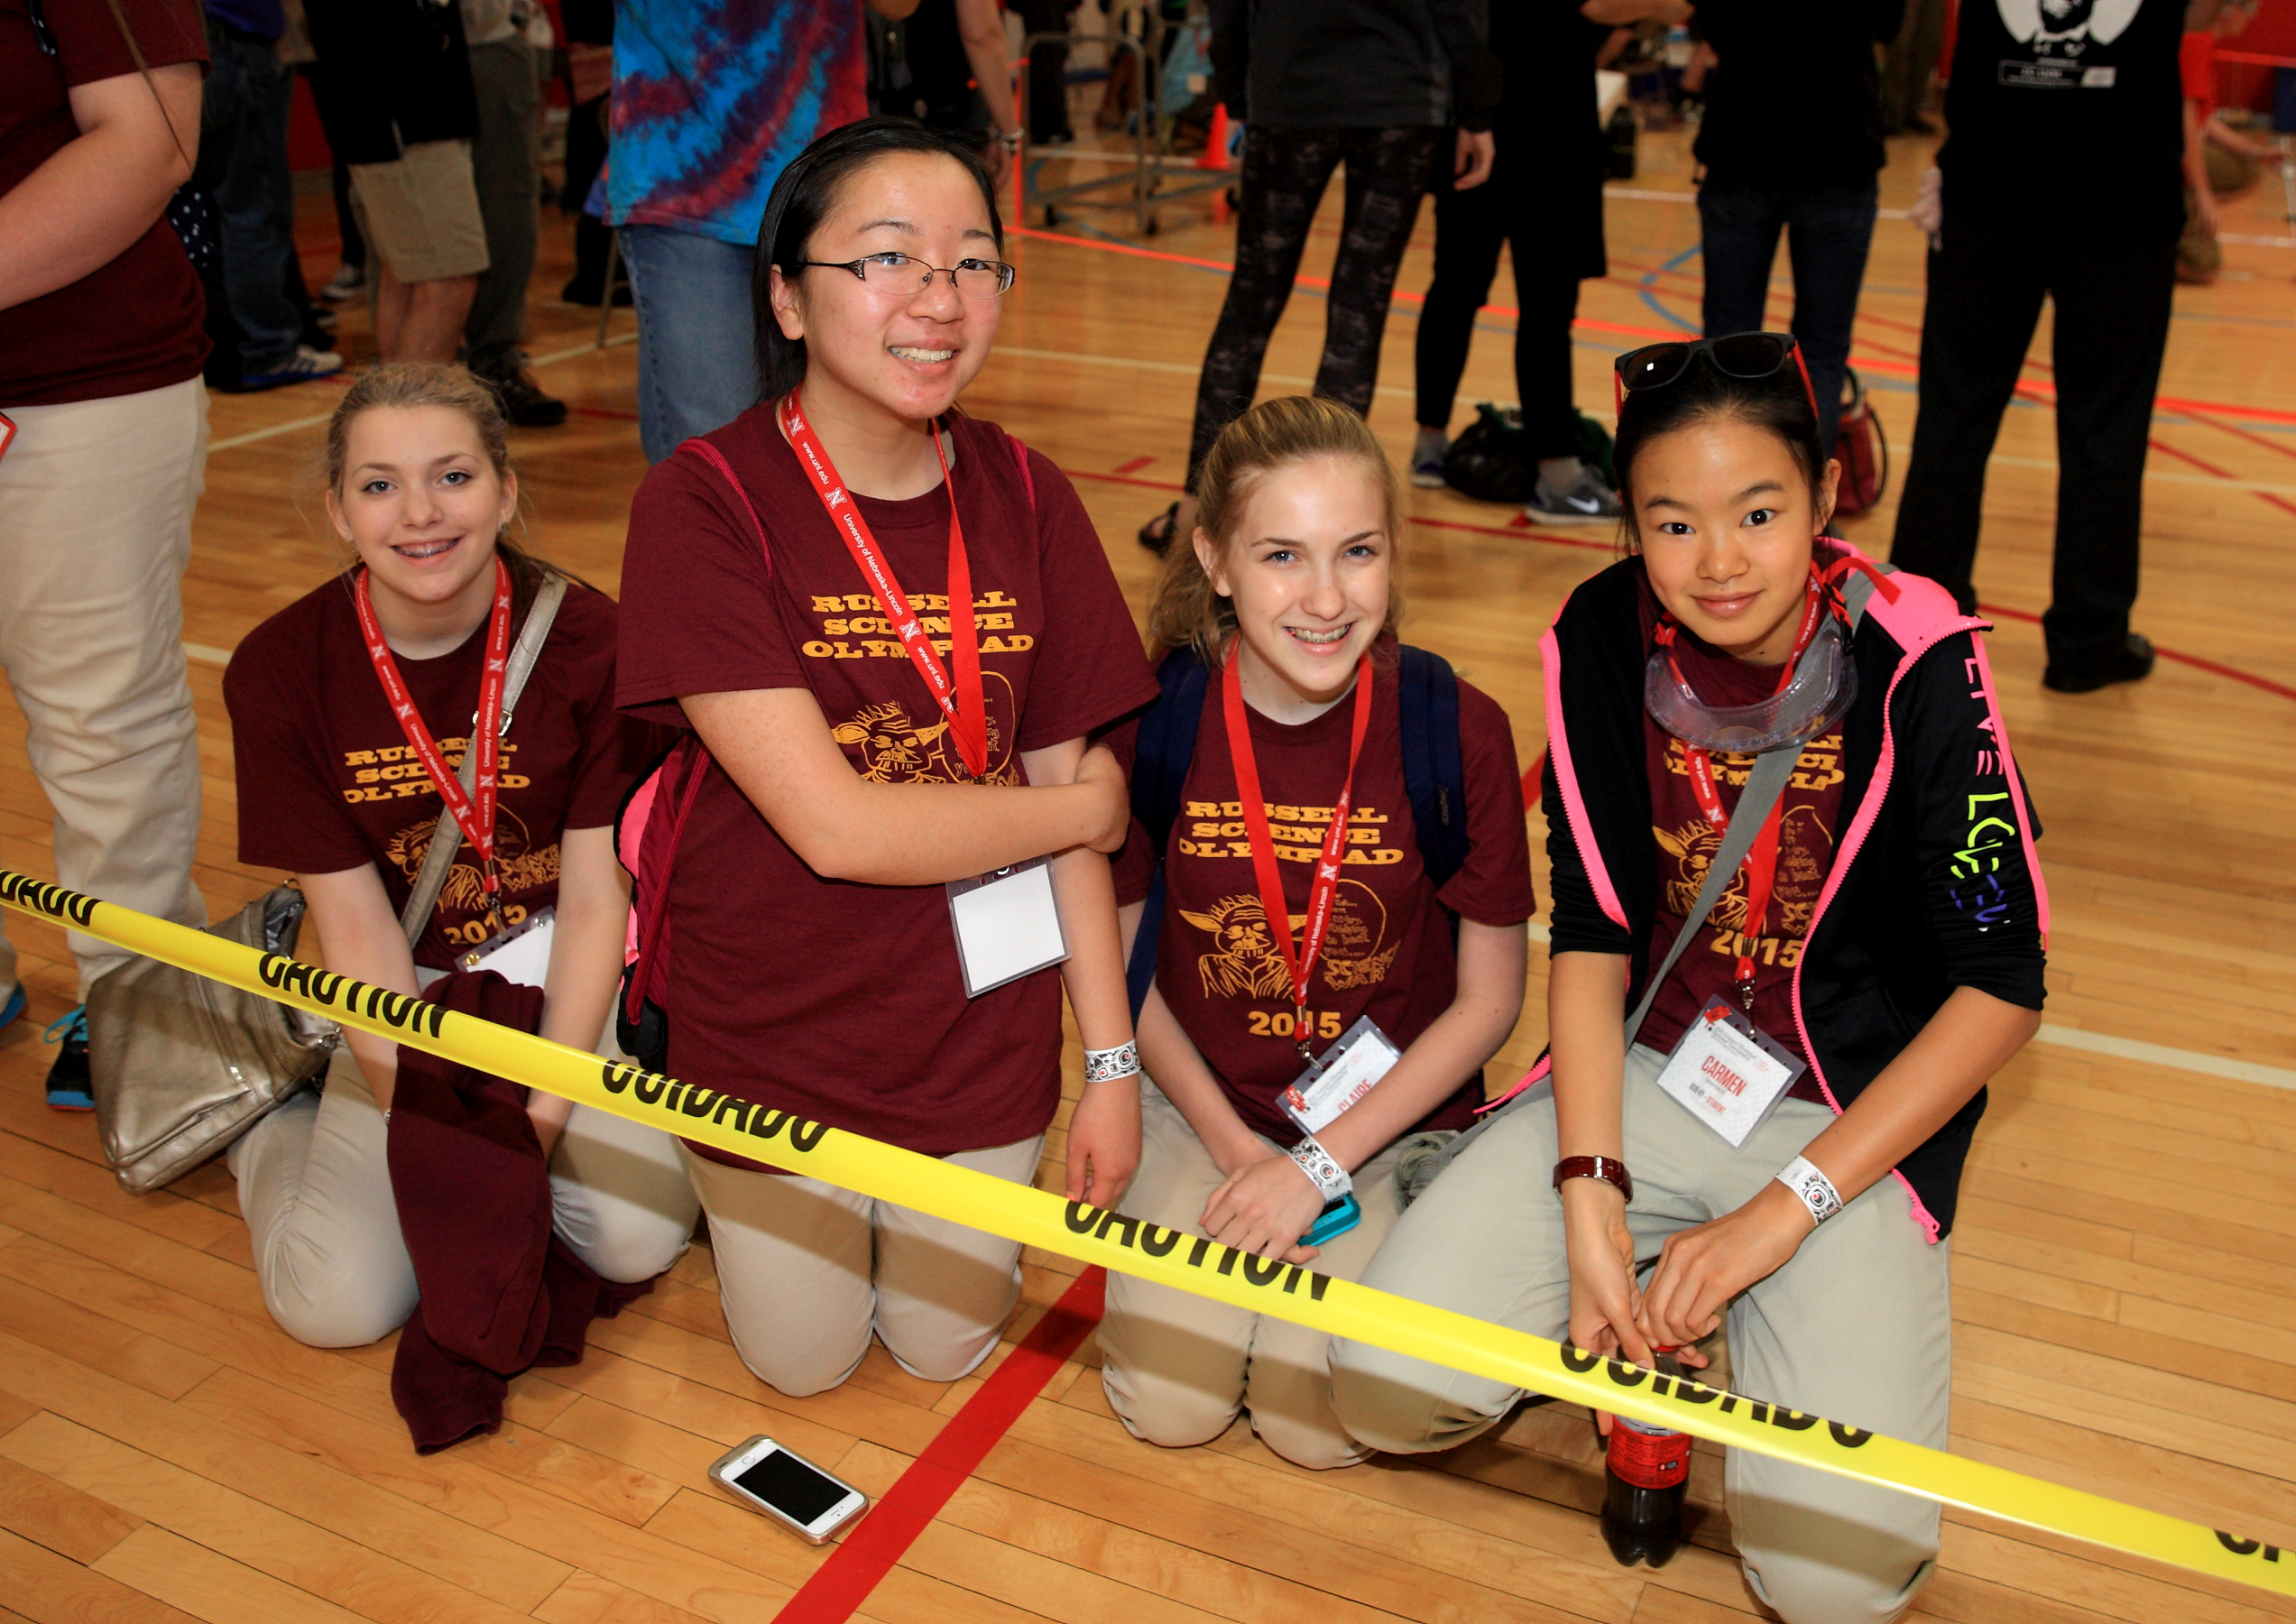 Science Olympiad vehicle events are always popular with competitors and spectators!